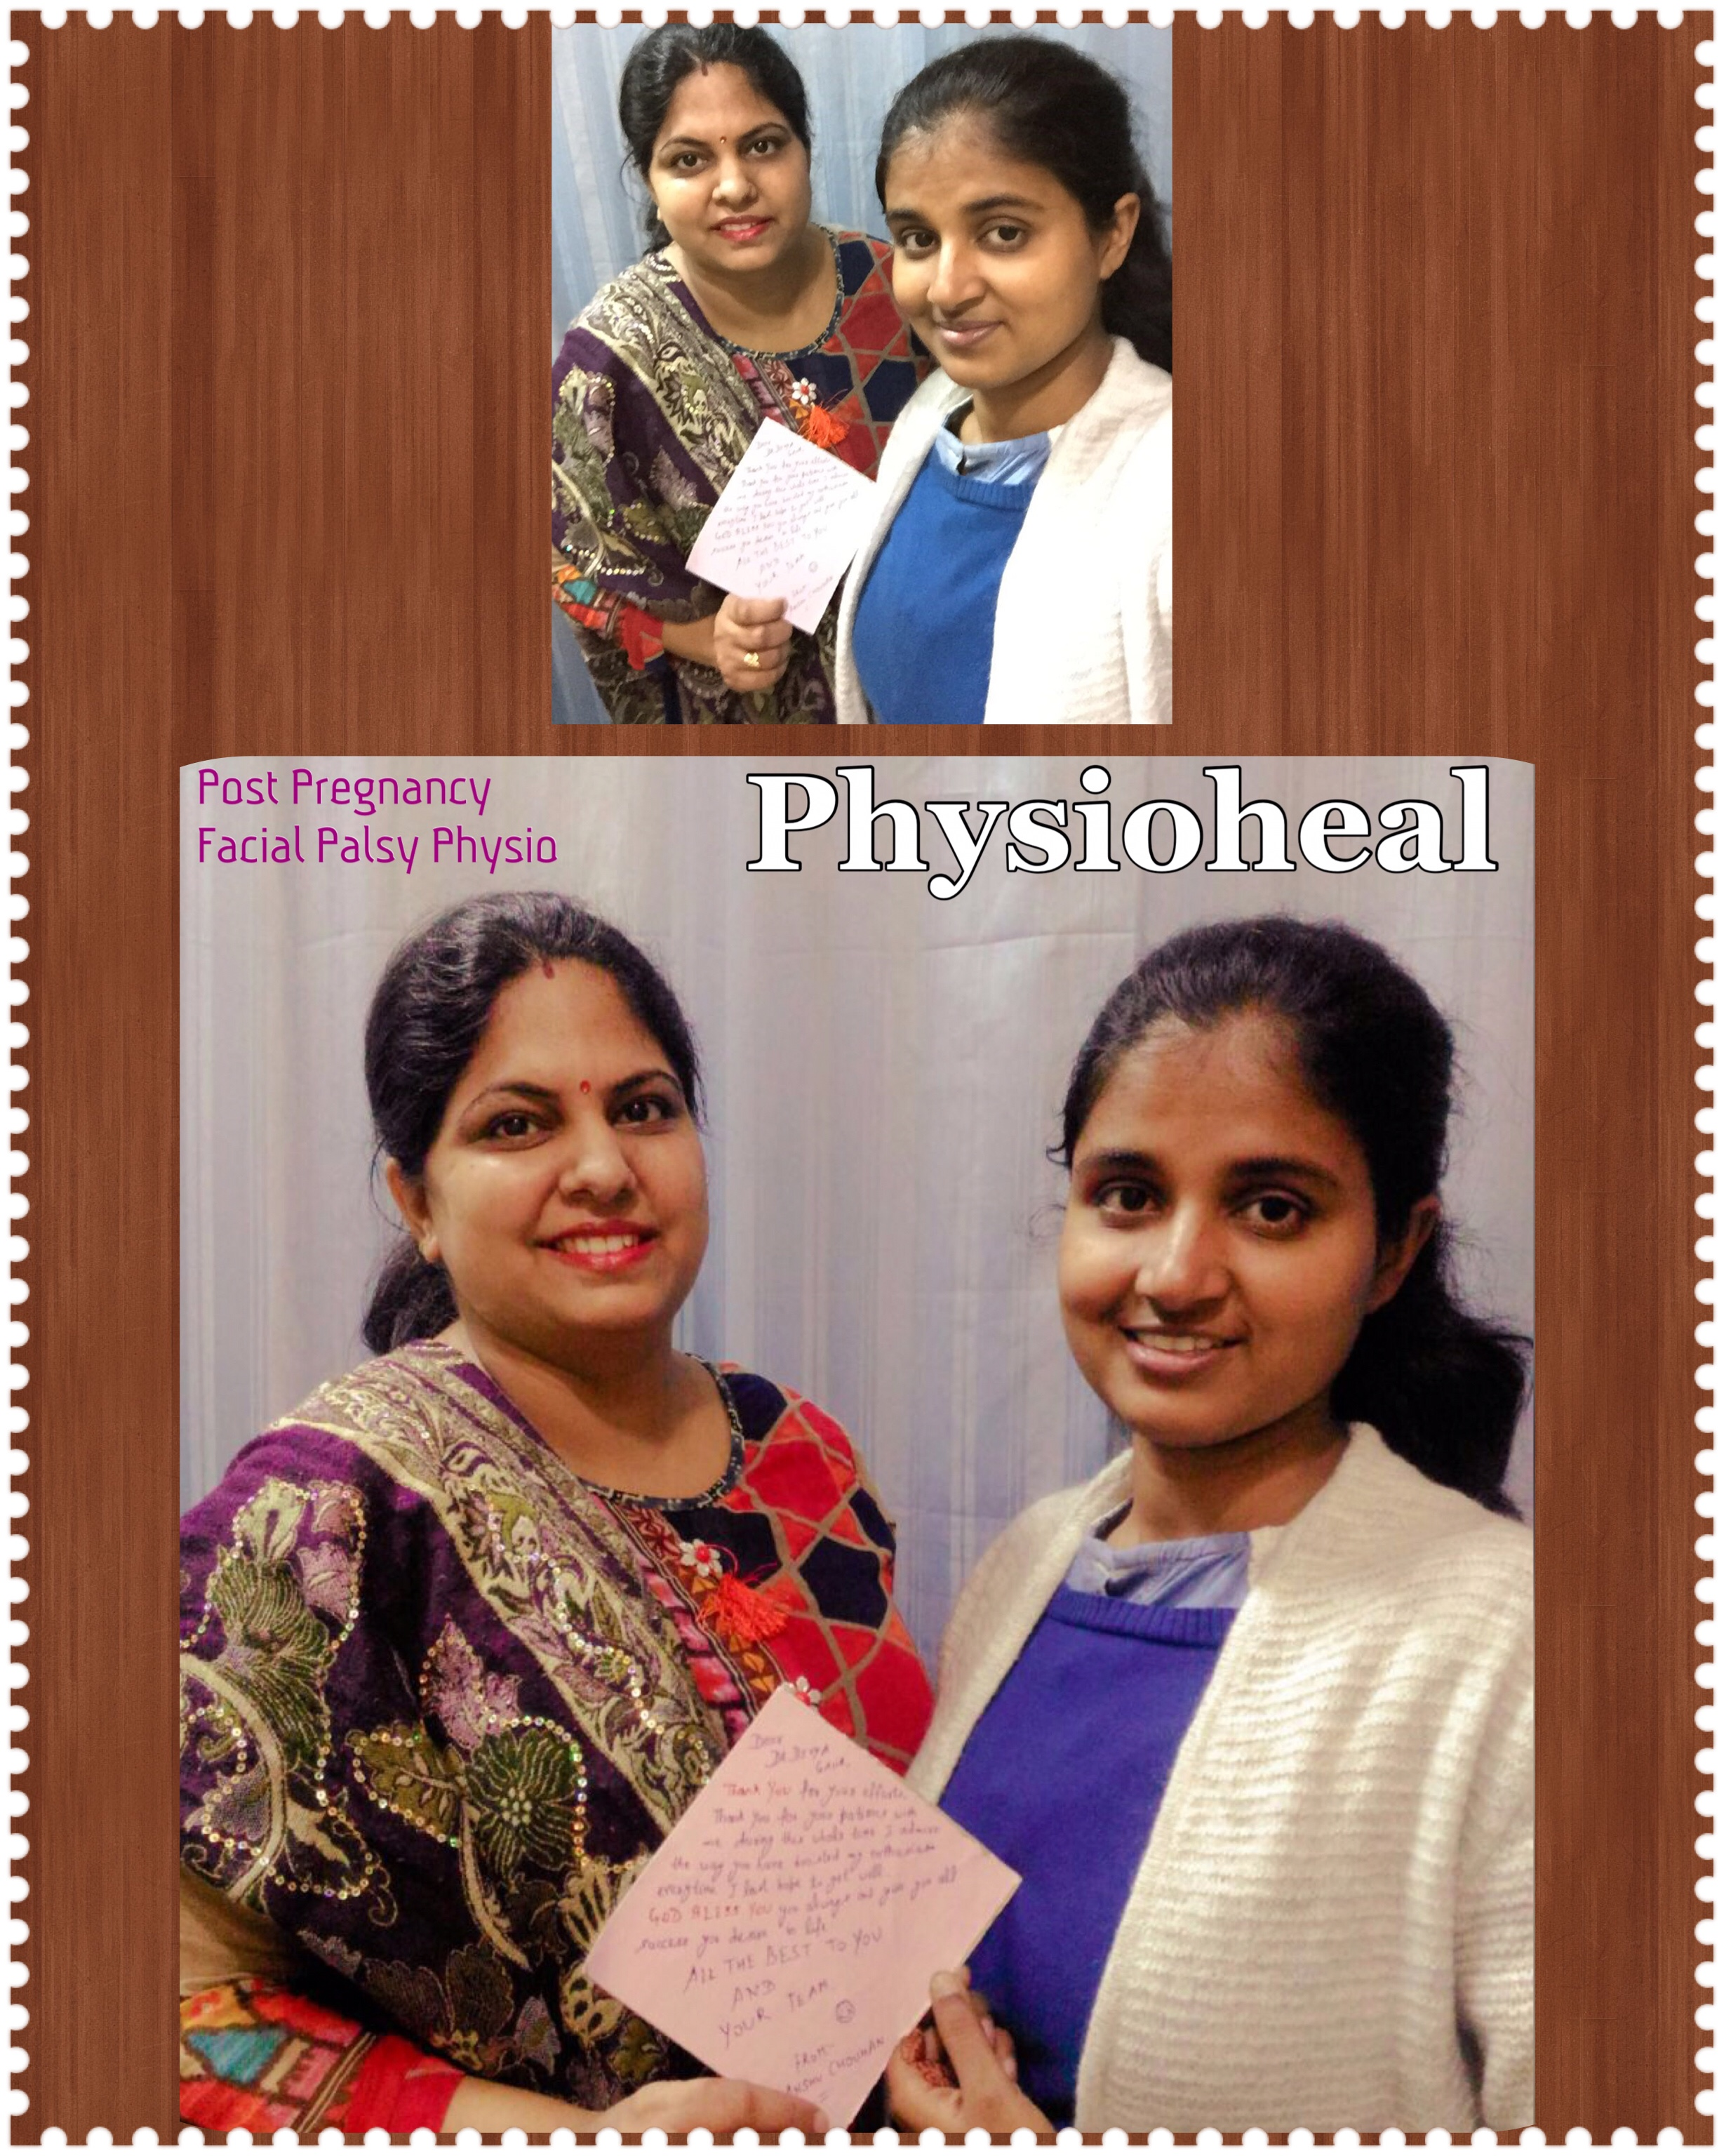 Post Pregnancy Facial Palsy Patient with her doctor